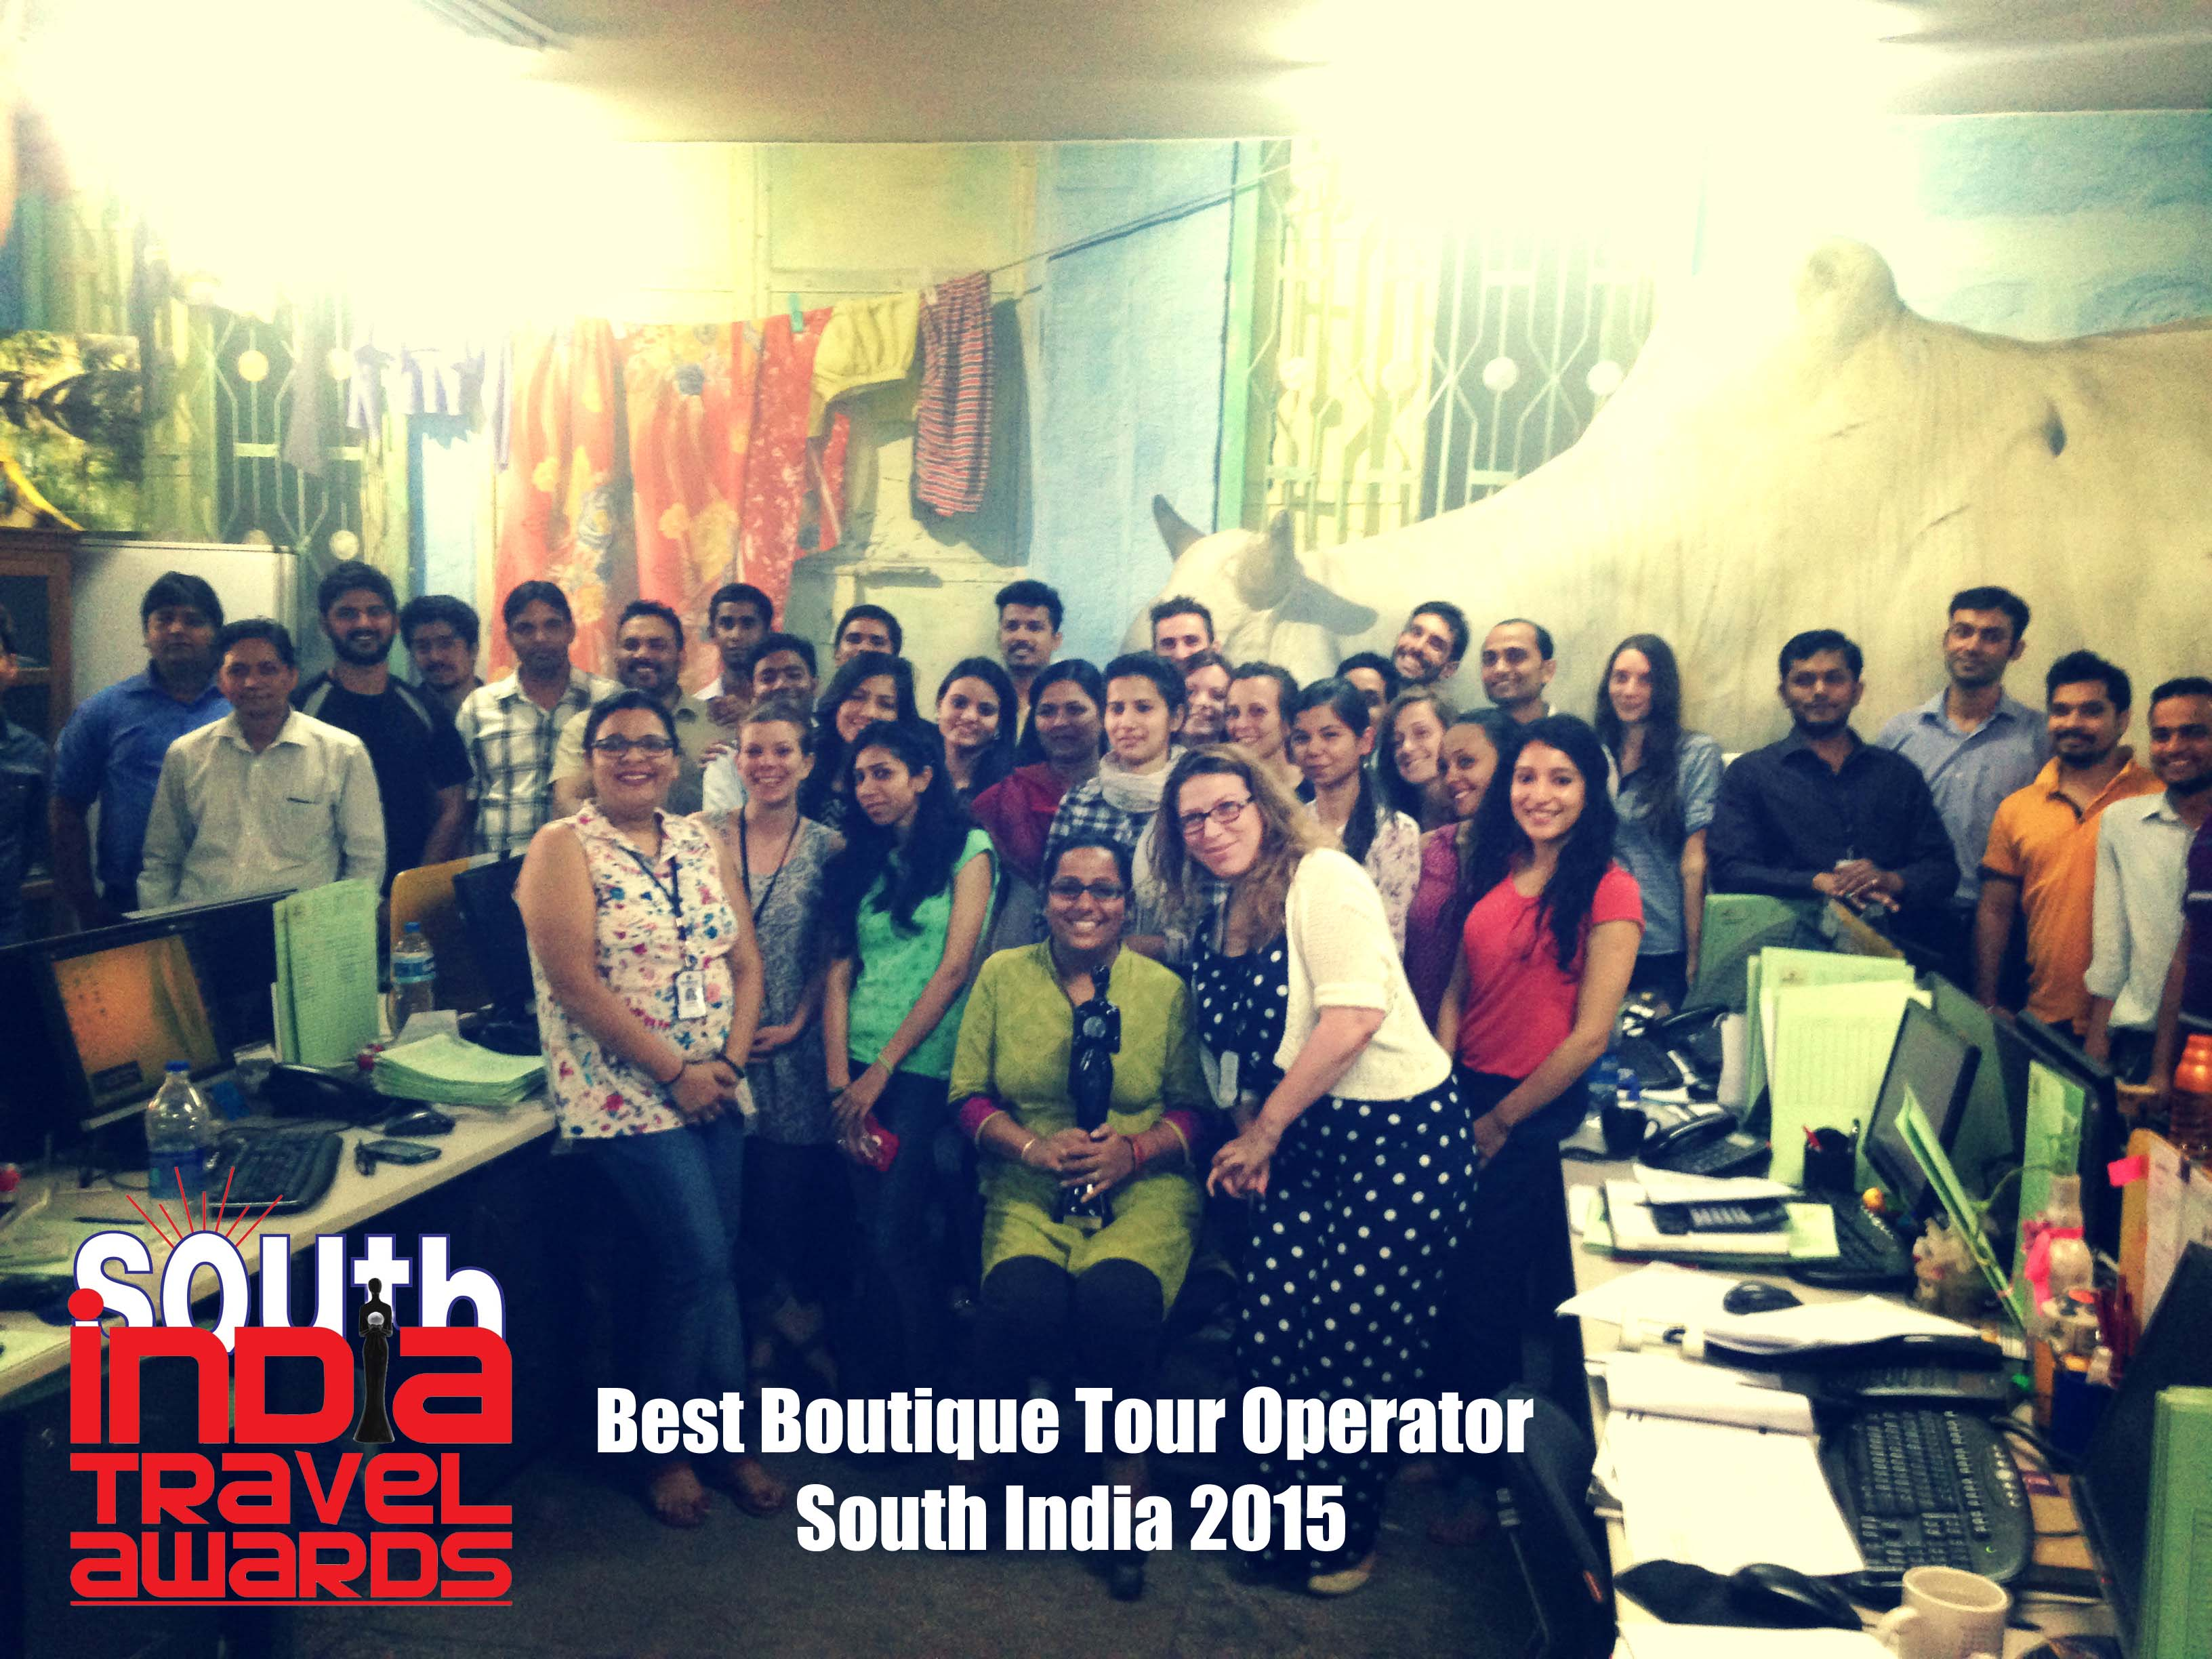 Best Boutique Tour Operator - South India 2015